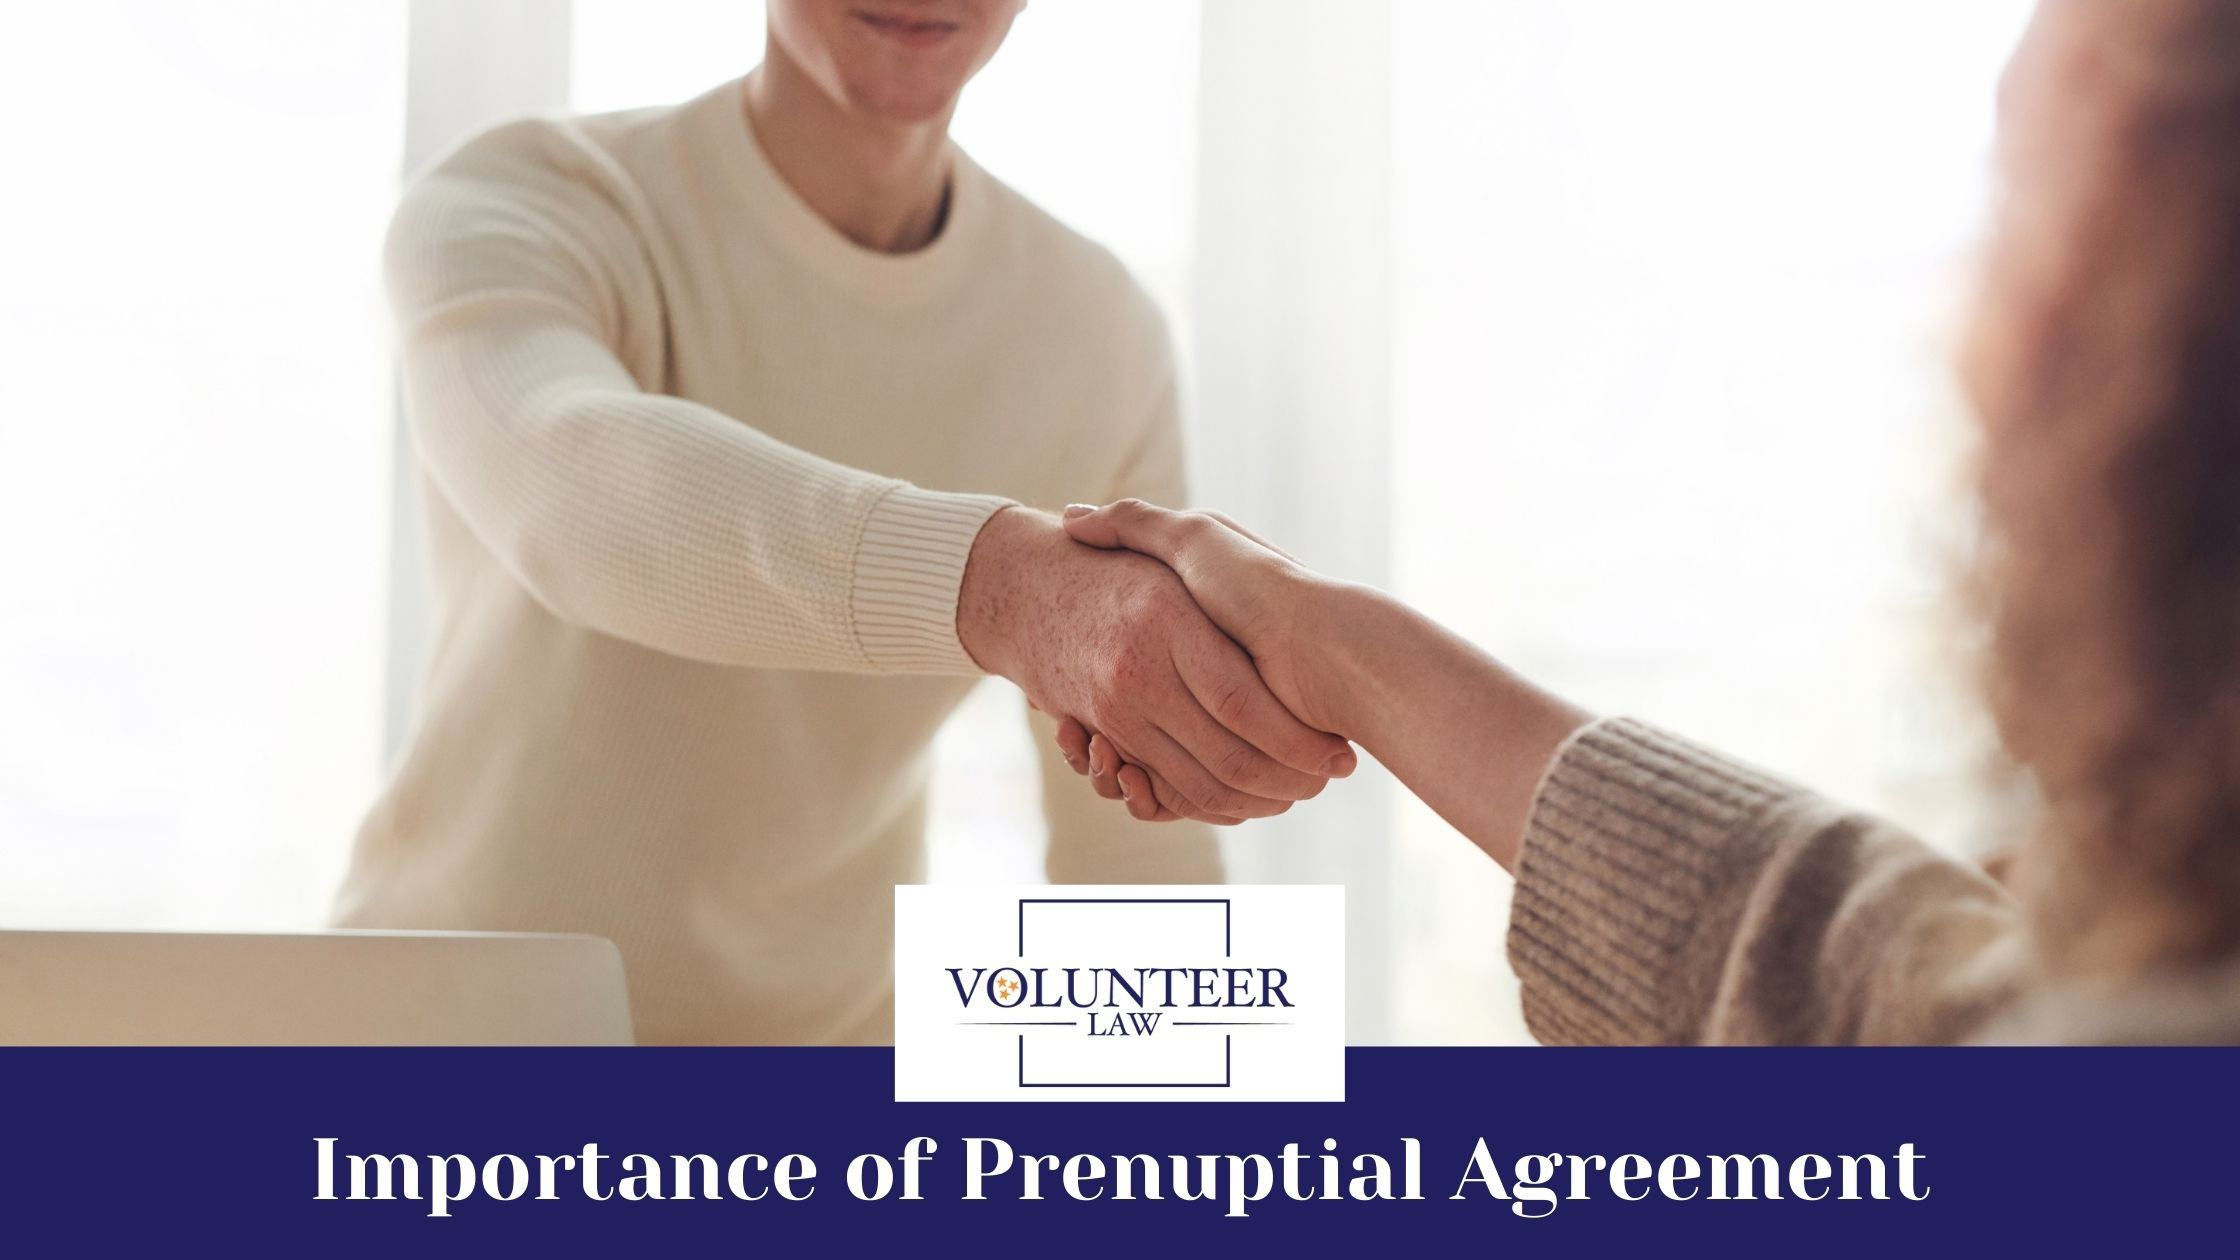 Importance of Prenuptial Agreement